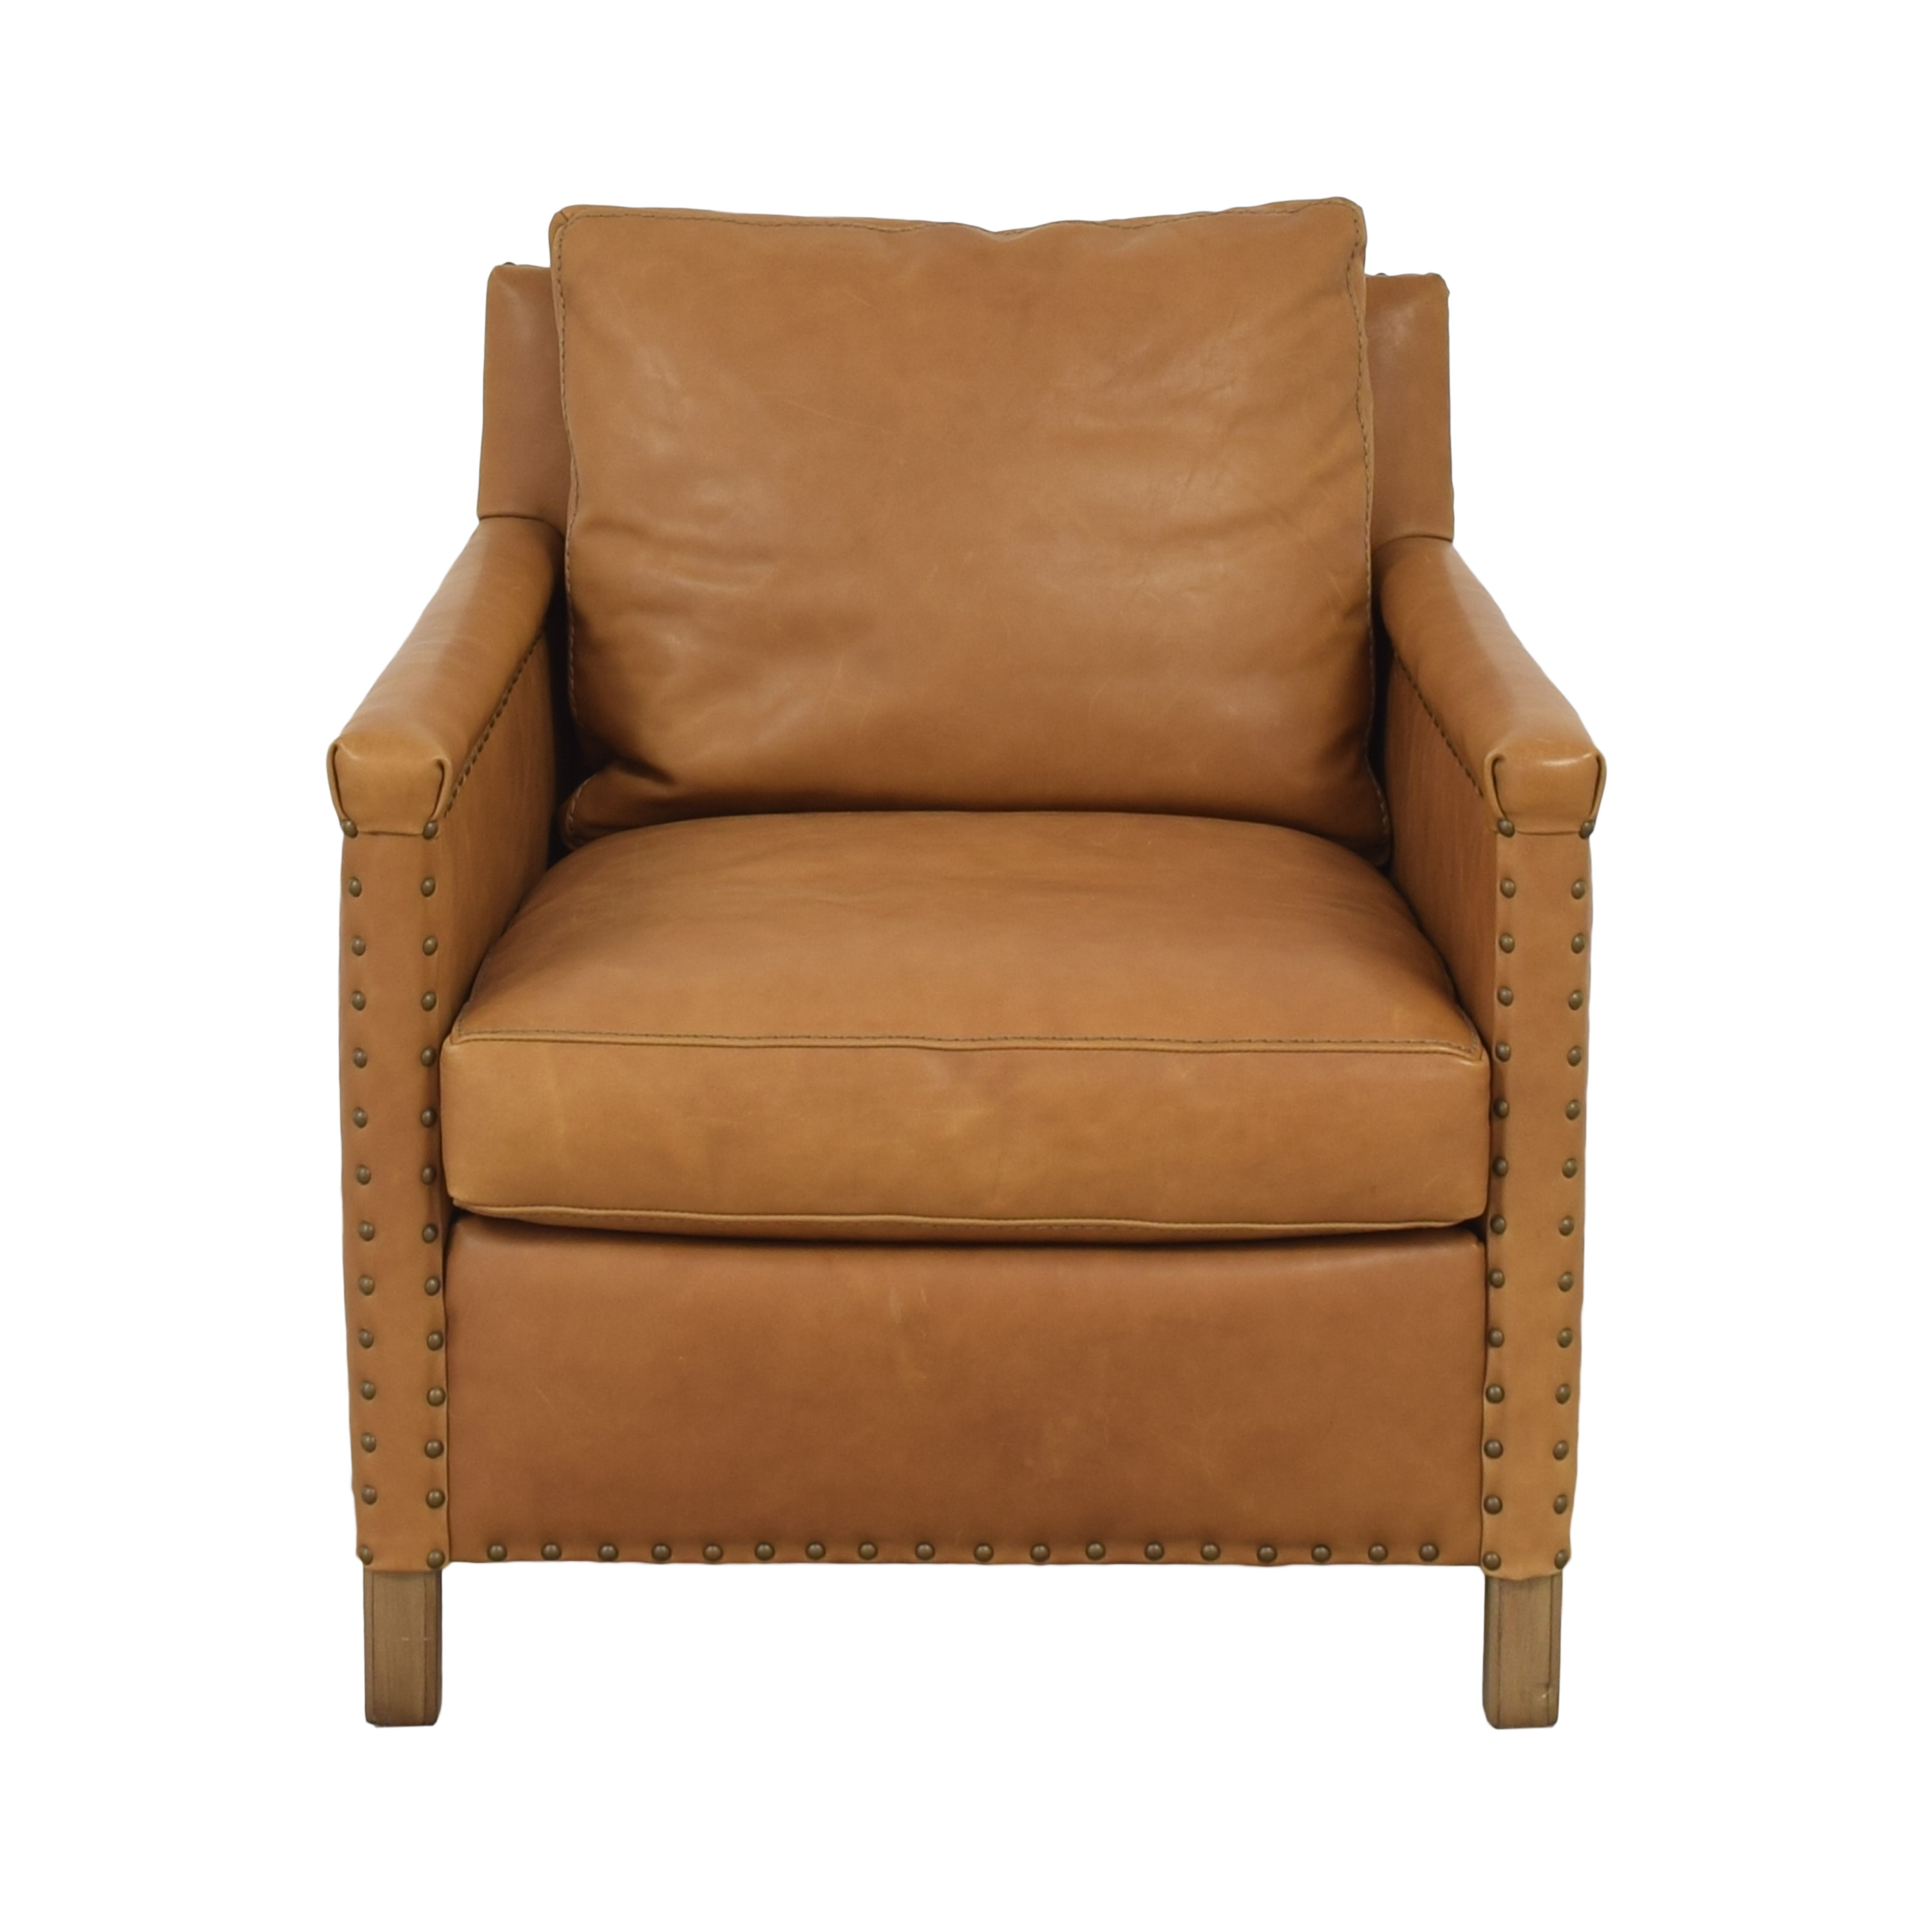 Crate & Barrel Crate & Barrel Trevor Leather Chair ma